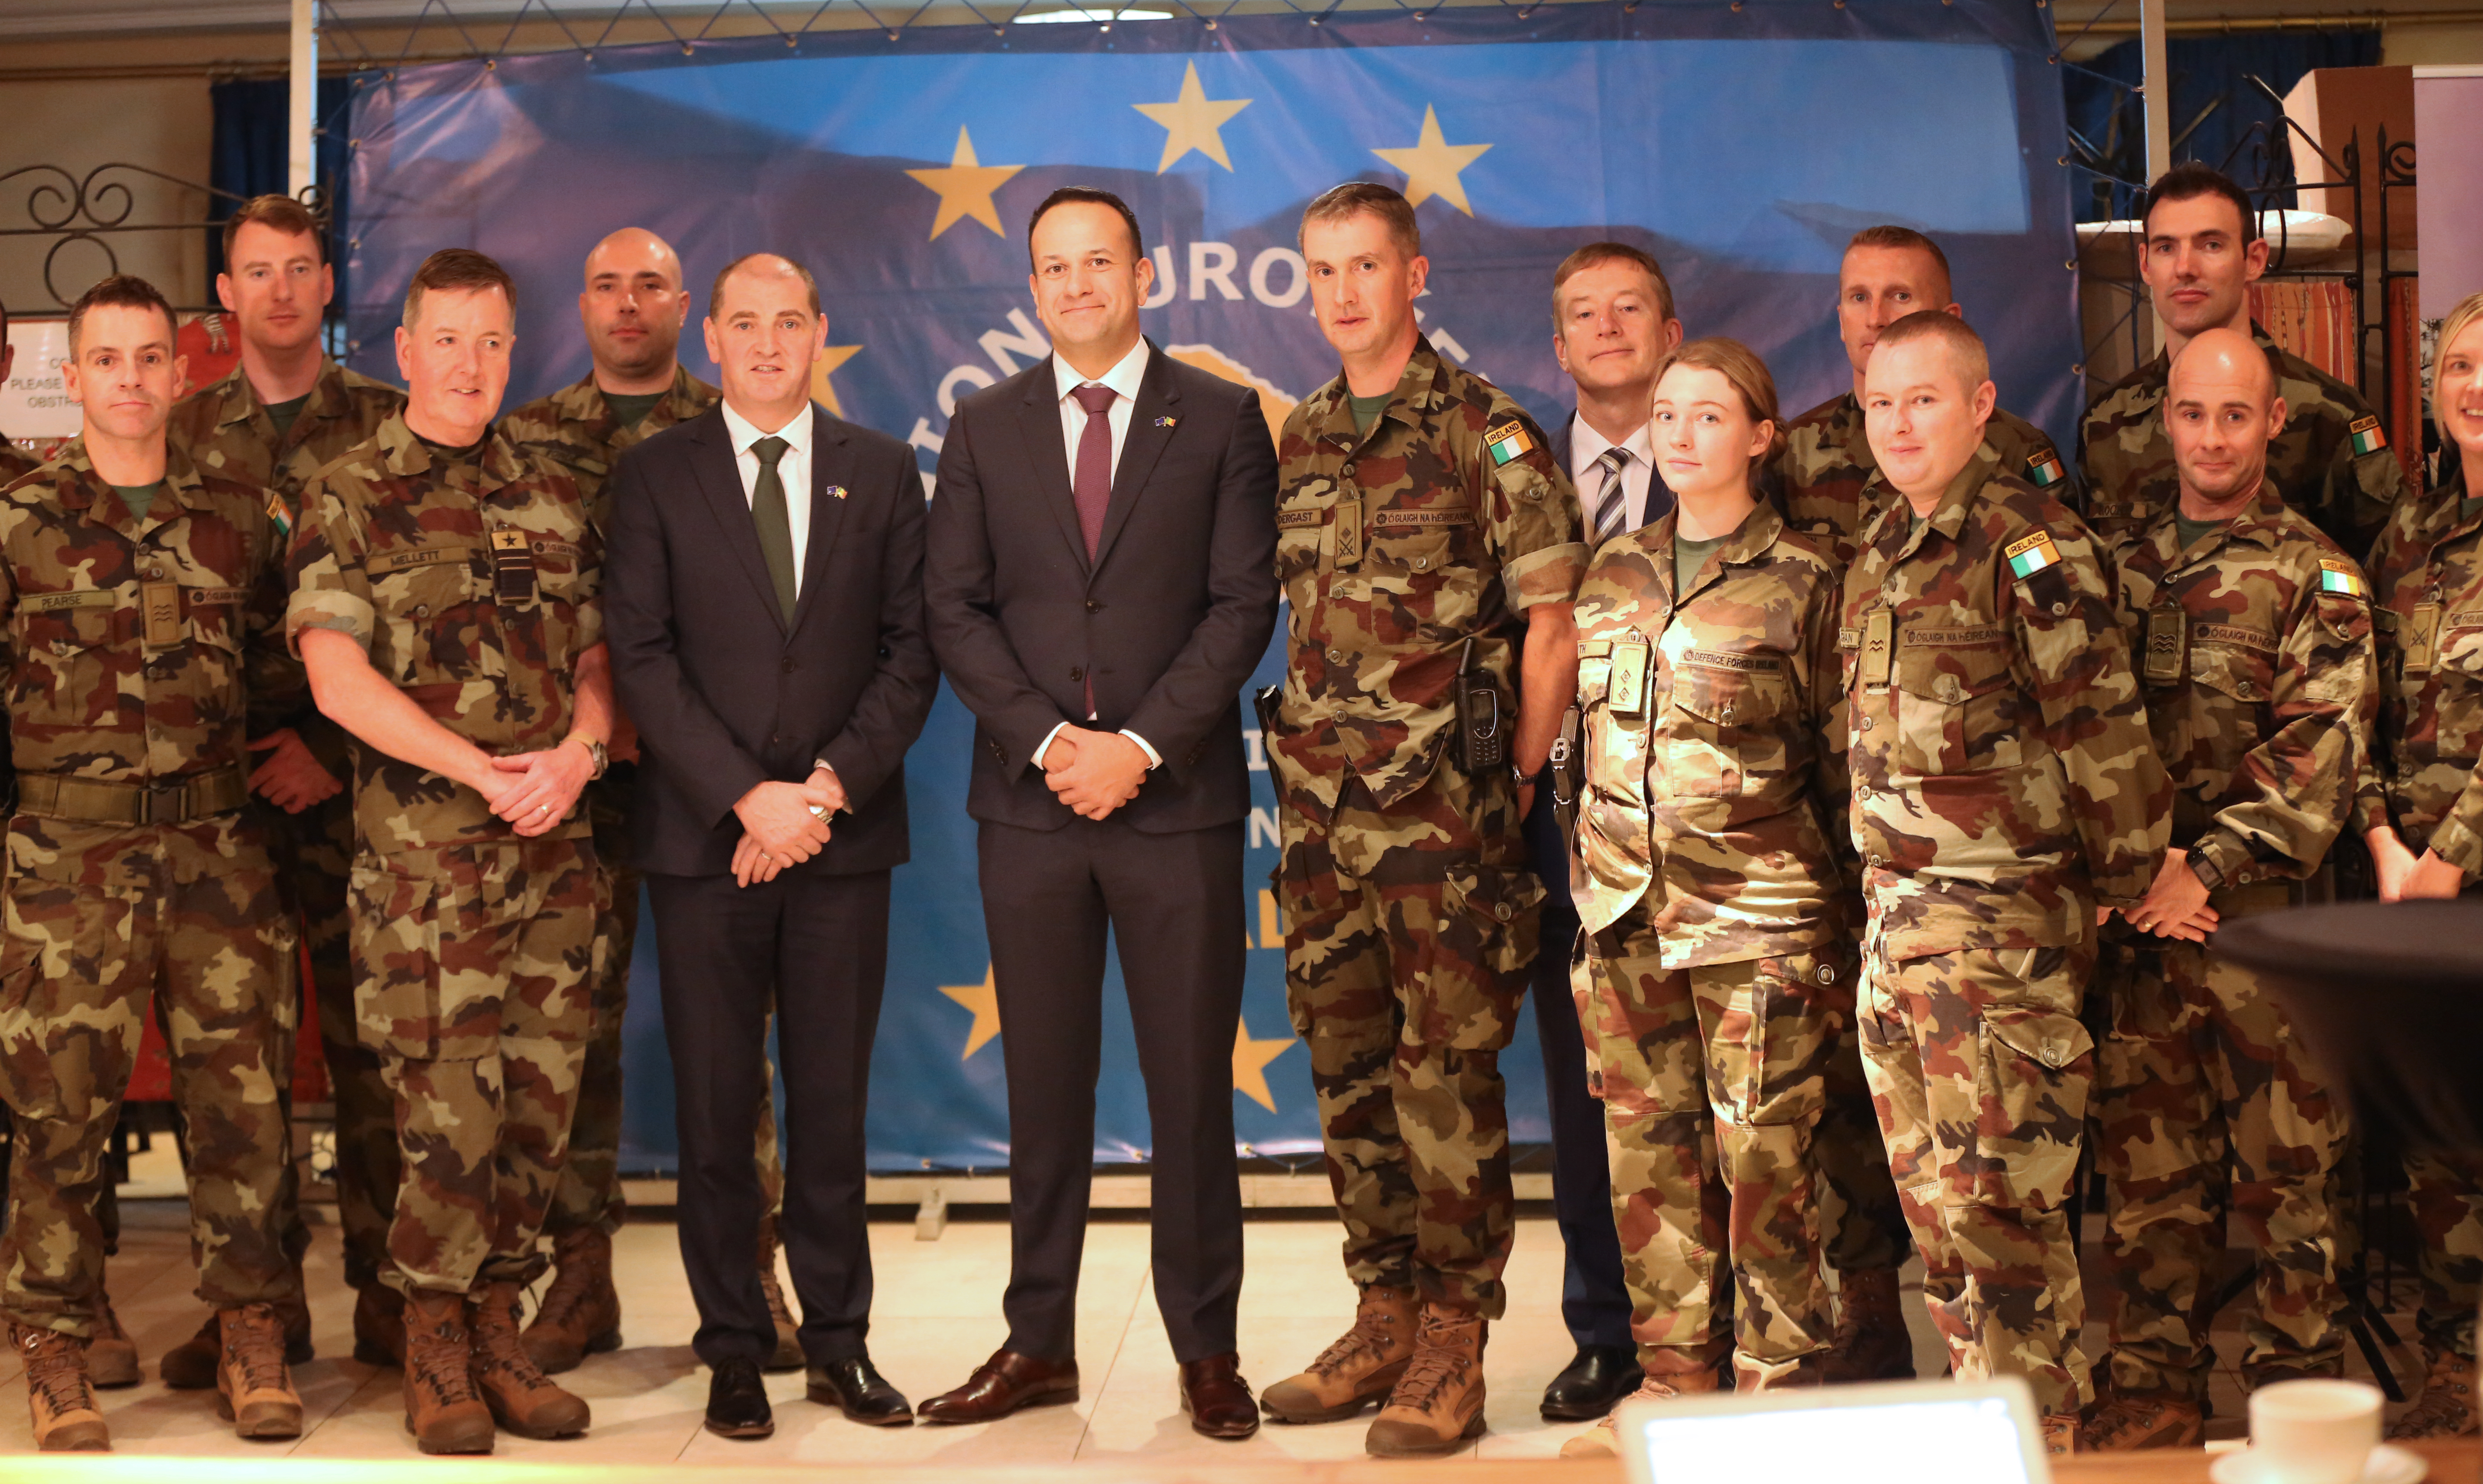 An Taoiseach visits EU Training Mission to Mali